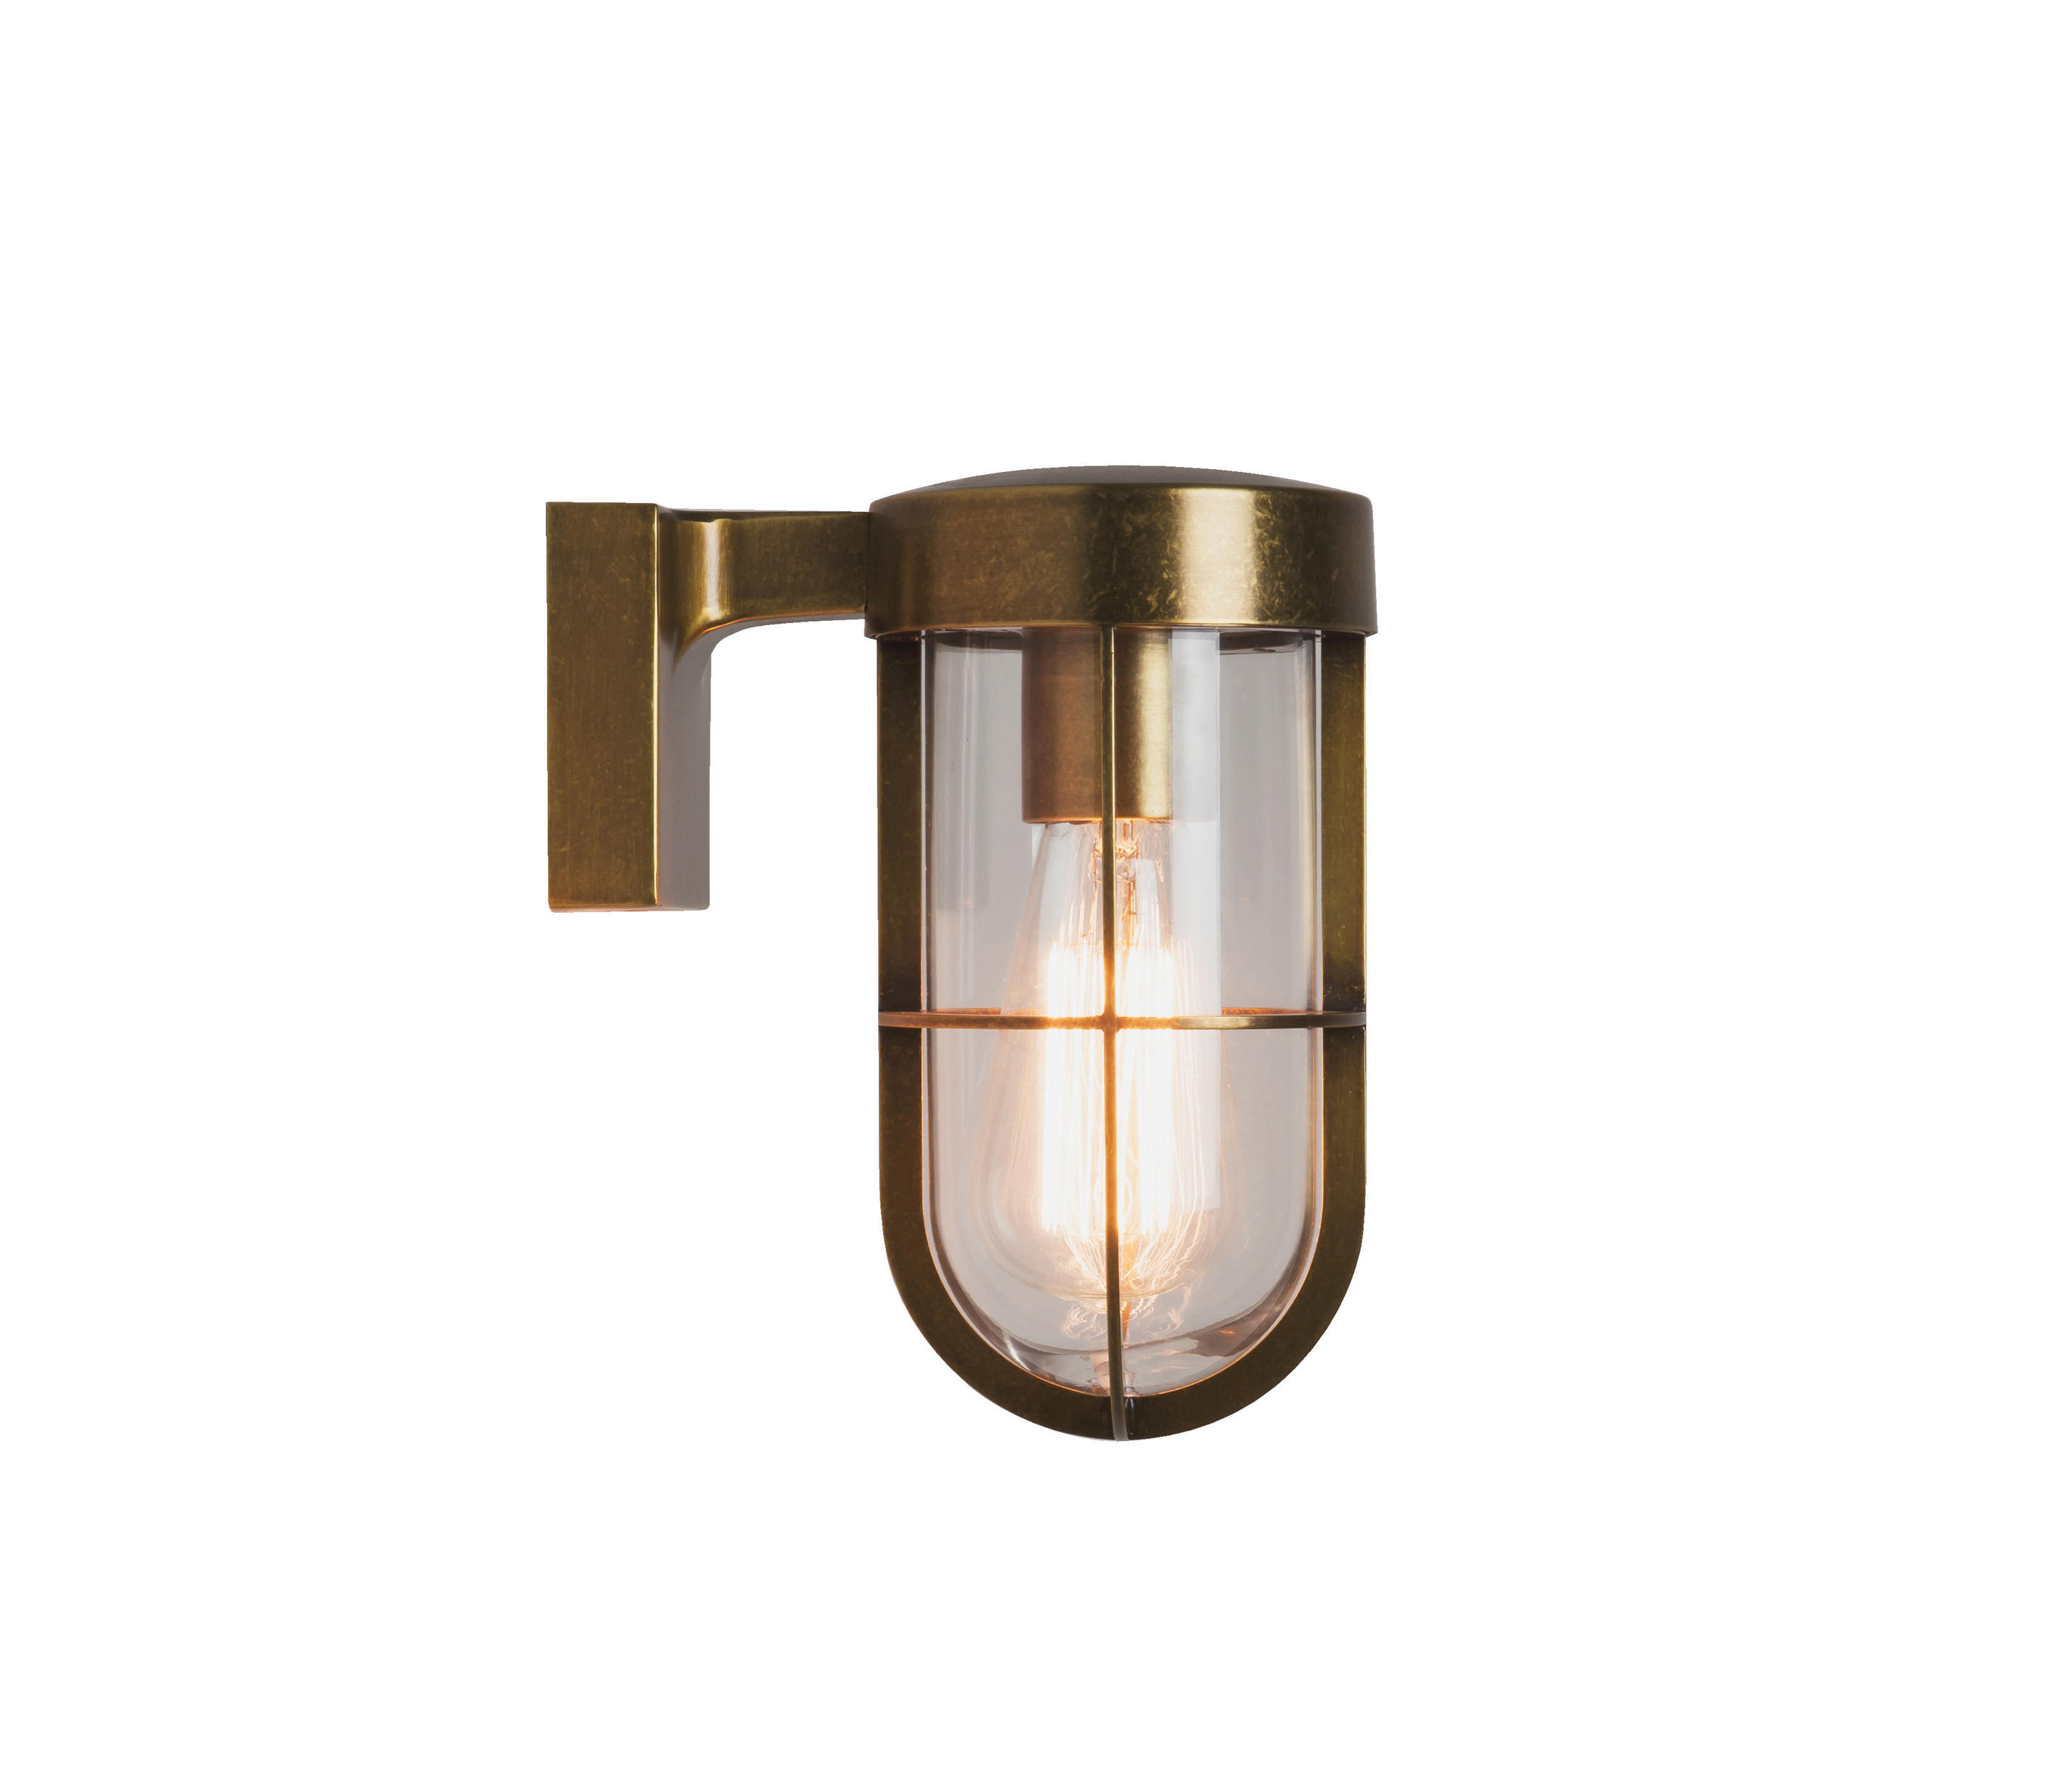 Cabin wall light antique brass outdoor wall lights from astro cabin wall light antique brass by astro lighting outdoor wall lights aloadofball Choice Image